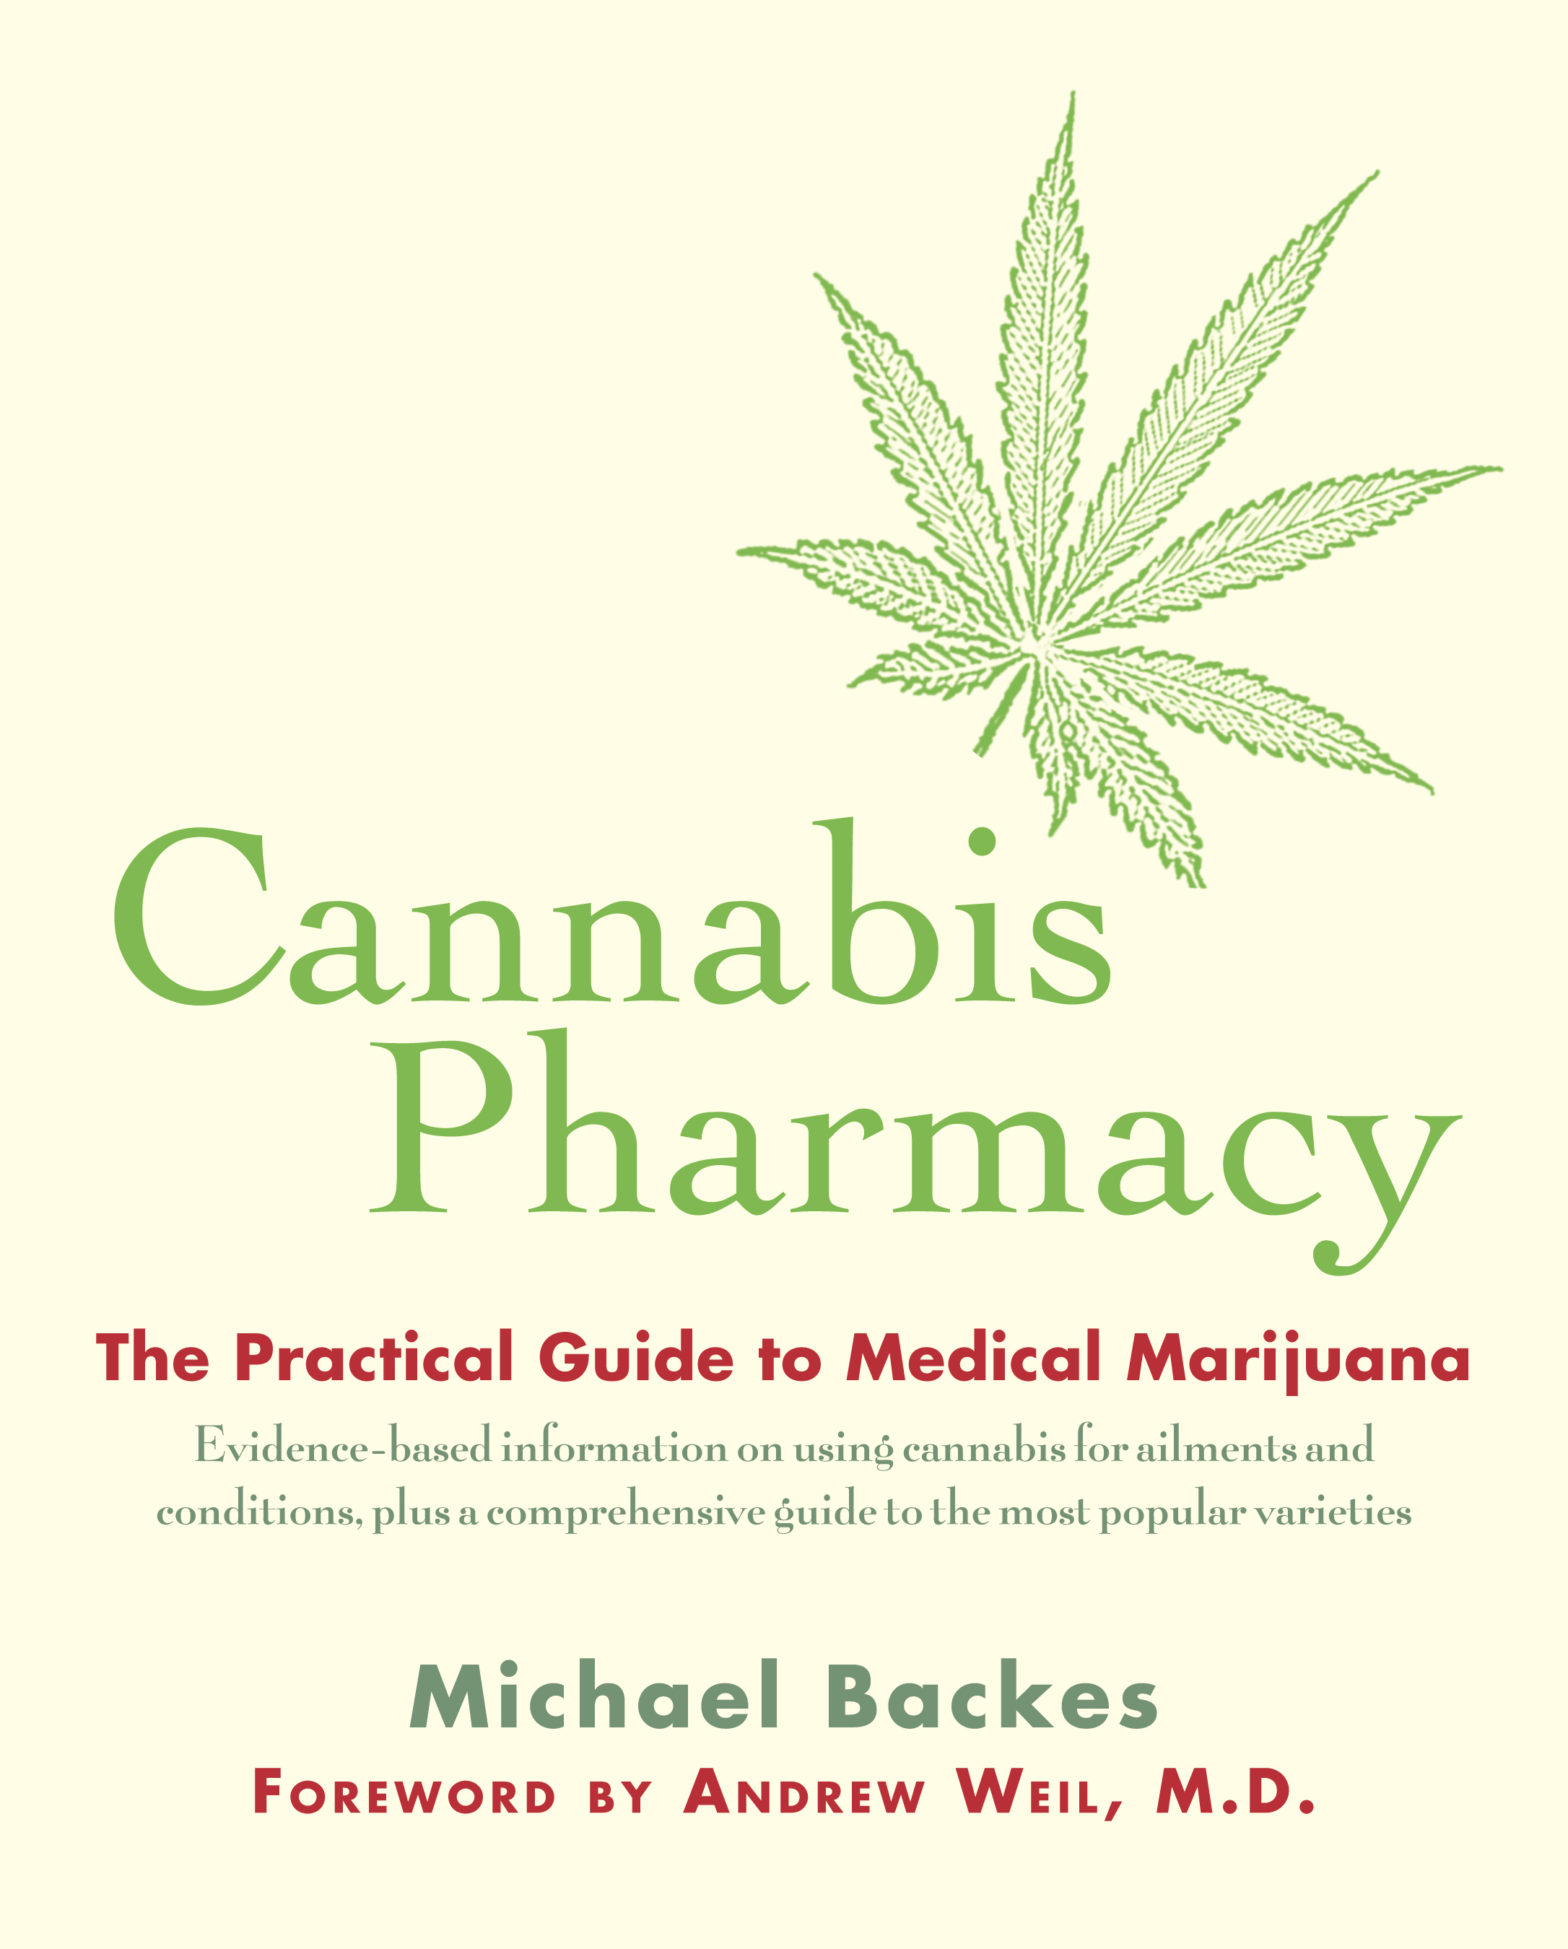 Book: Cannabis Pharmacy: The Practical Guide to Medical Marijuana